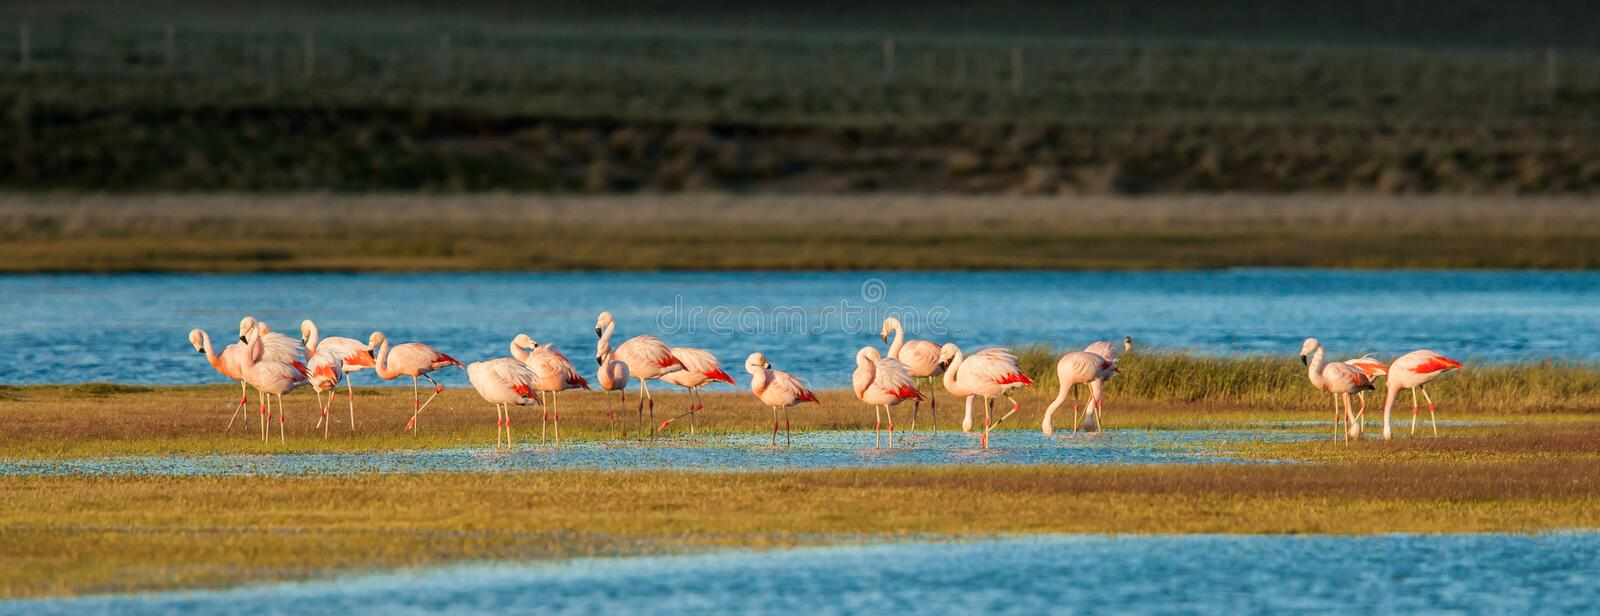 Chileense Flamingo's stock afbeeldingen